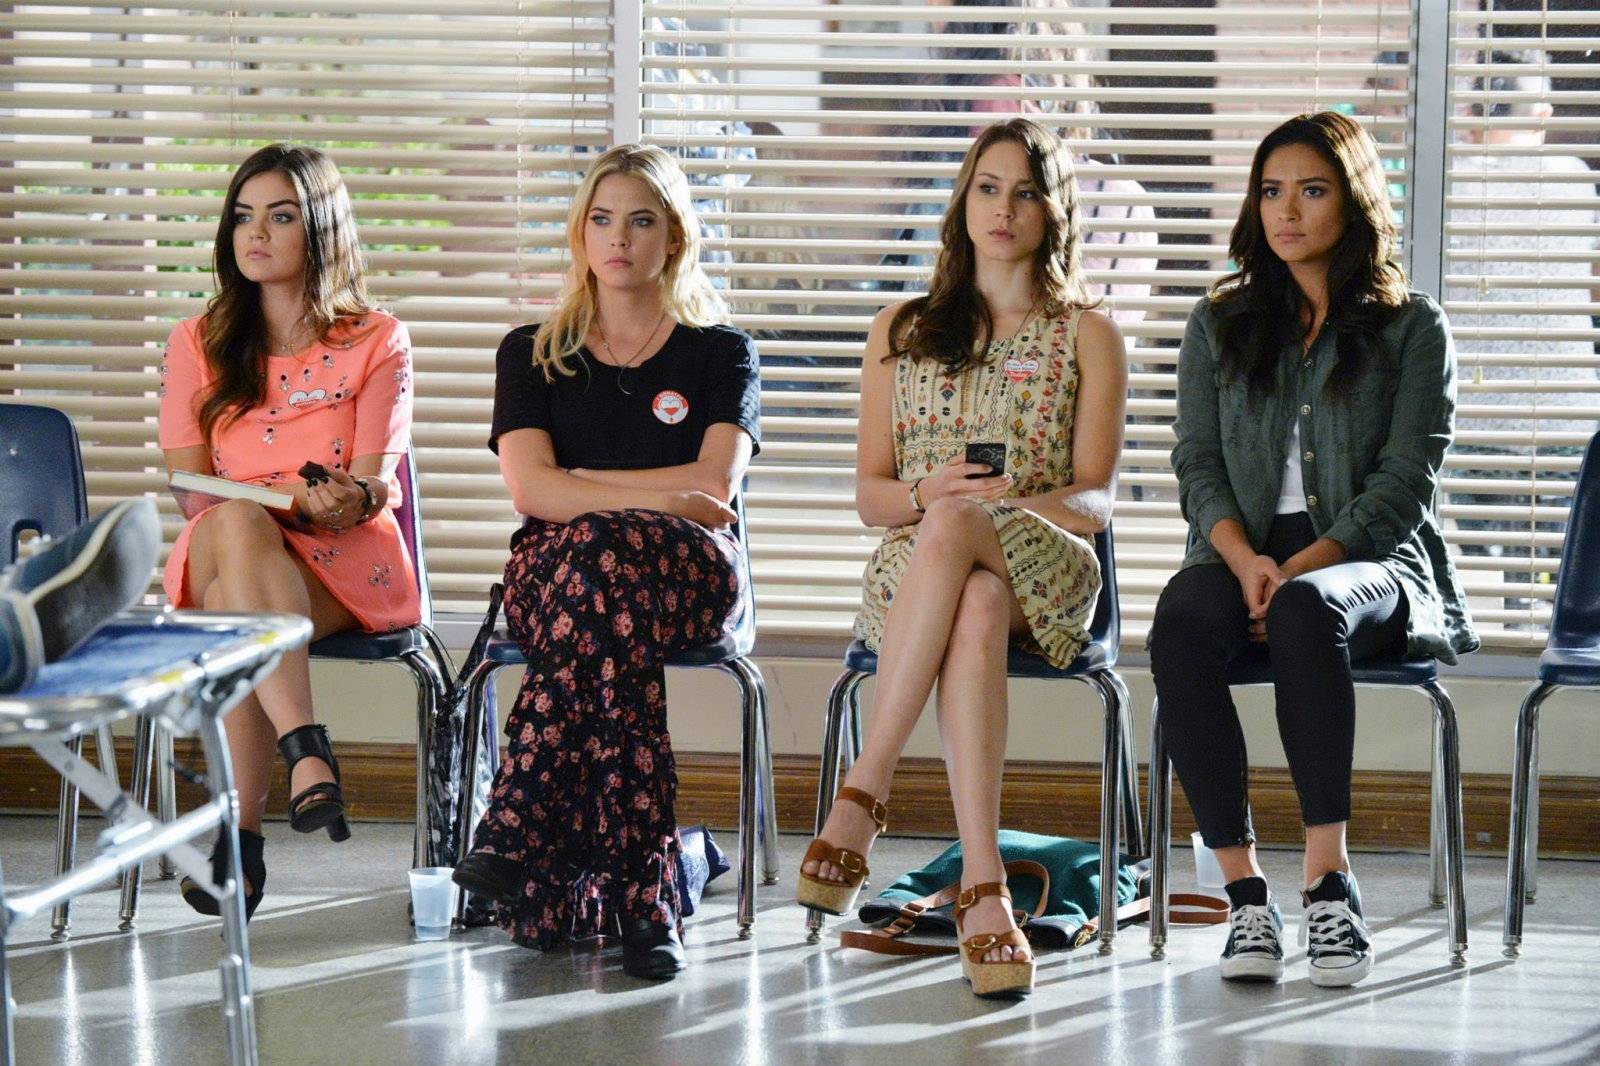 Pretty Little Liars Season 5: 'A' will be revealed soon, teases show producer Marlene King